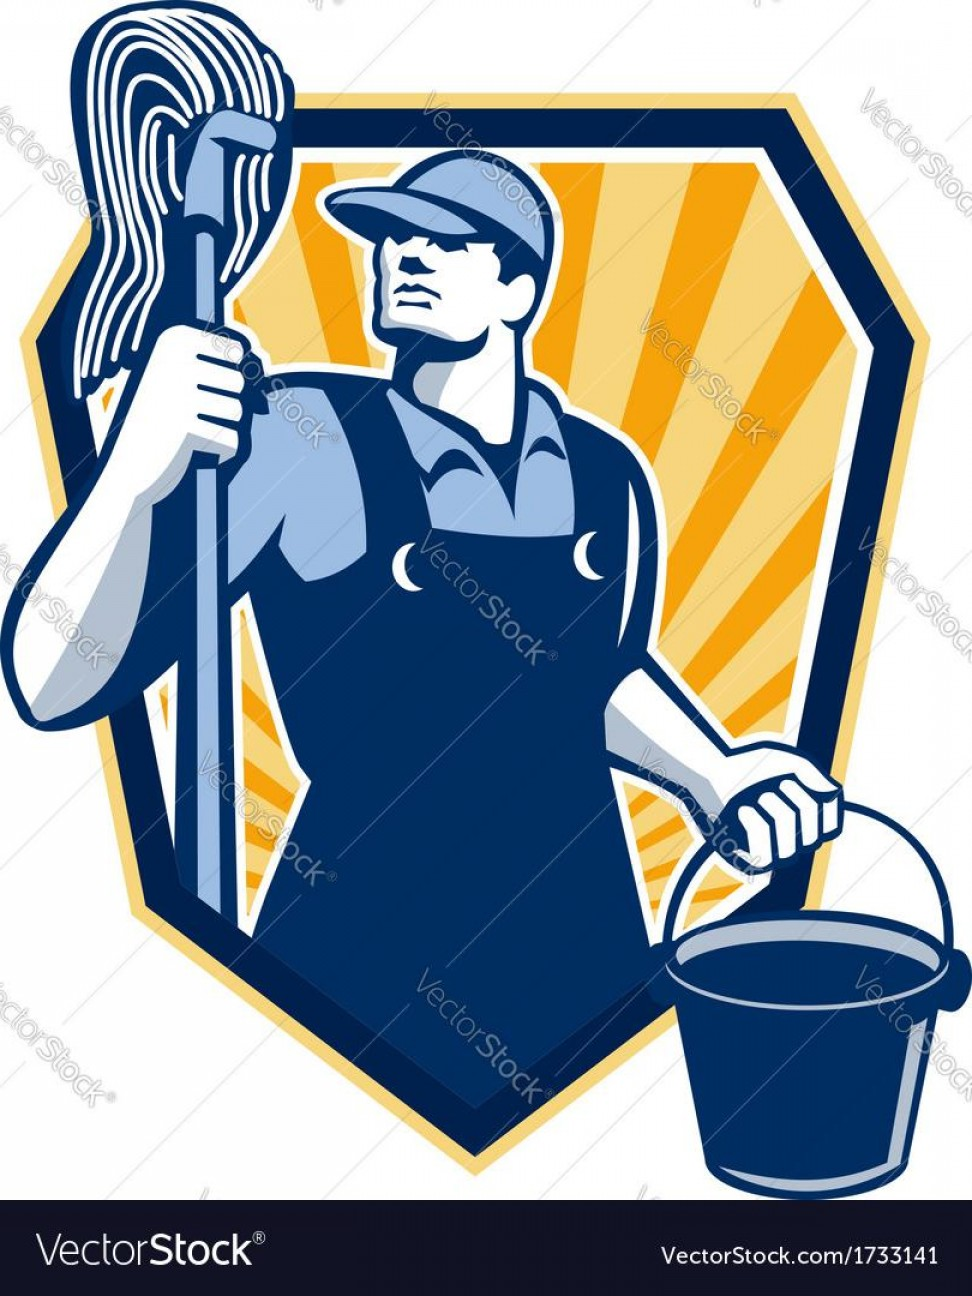 Mop And Bucket Clip Art Vector: Hd Janitor Cleaner Hold Mop Bucket Shield Retro Vector Photos